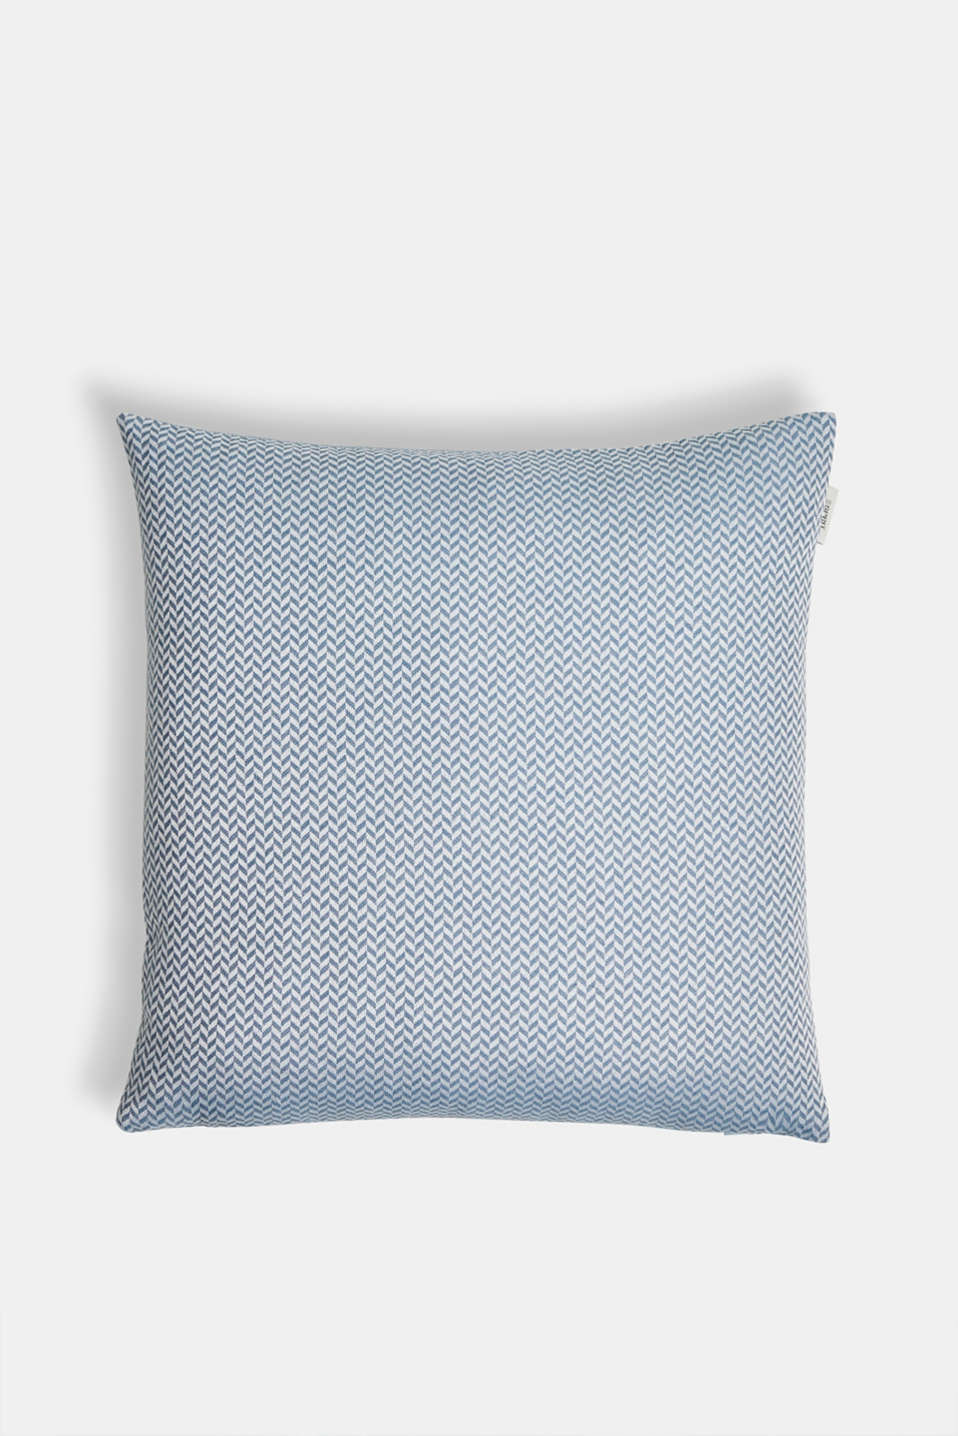 Esprit - Cushion cover with a herringbone texture